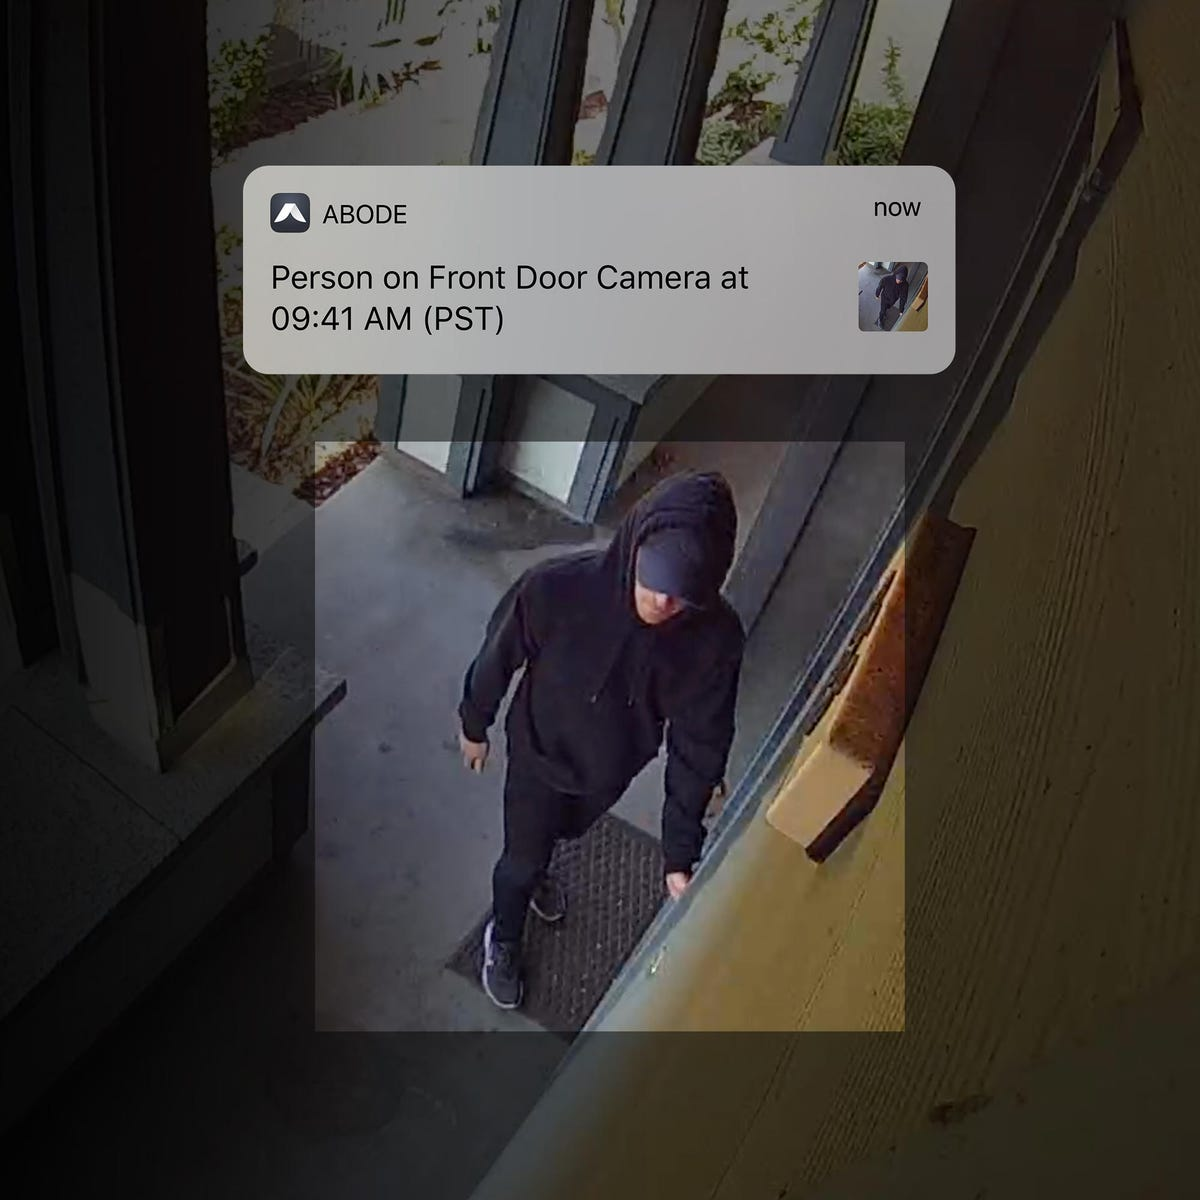 abode-cam-2-person-detection.jpg